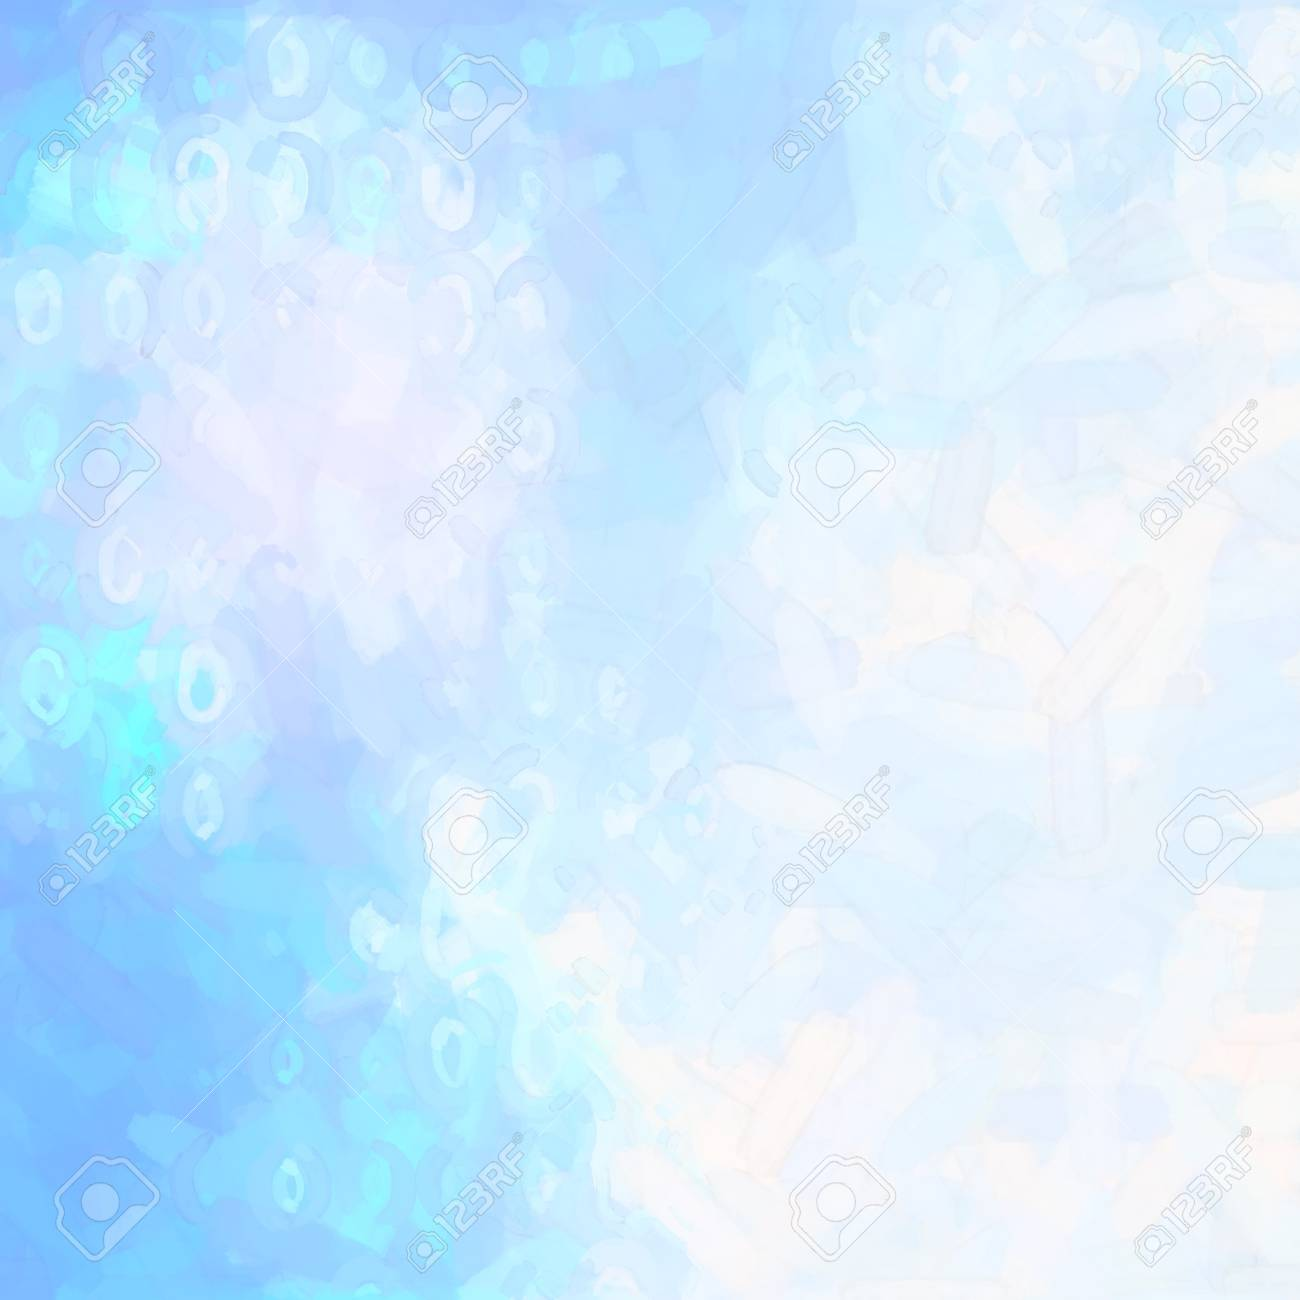 Colorful watercolor background. Abstract watercolour background paper design of bright color splashes modern art painted canvas background texture atmosphere art. Stock Photo - 18597624